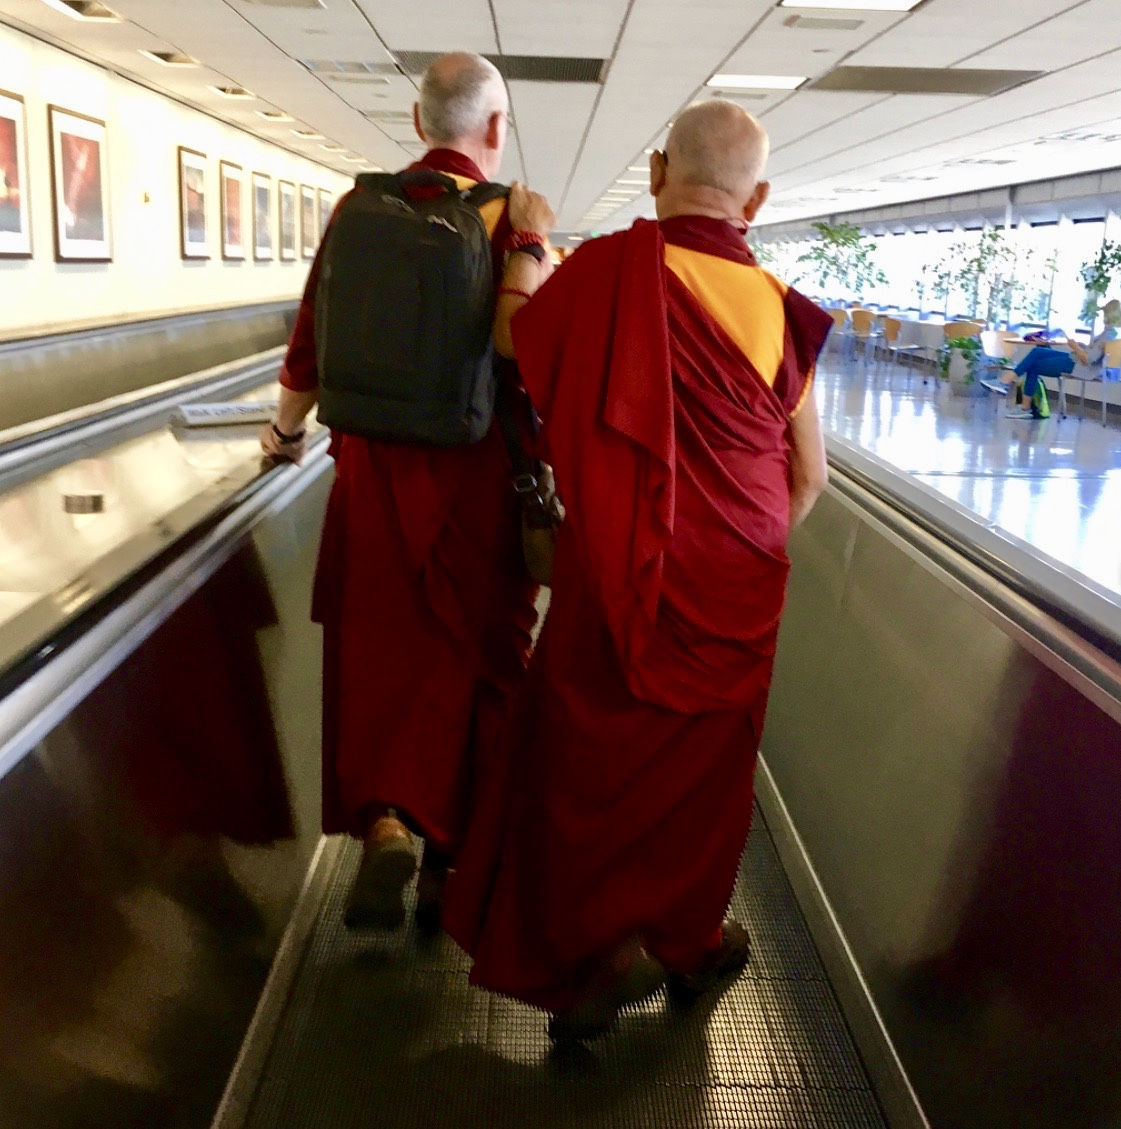 Lama Zopa Rinpoche traveling to Boston to give teachings, August 2018. (Photo Ven Losang Sherab)